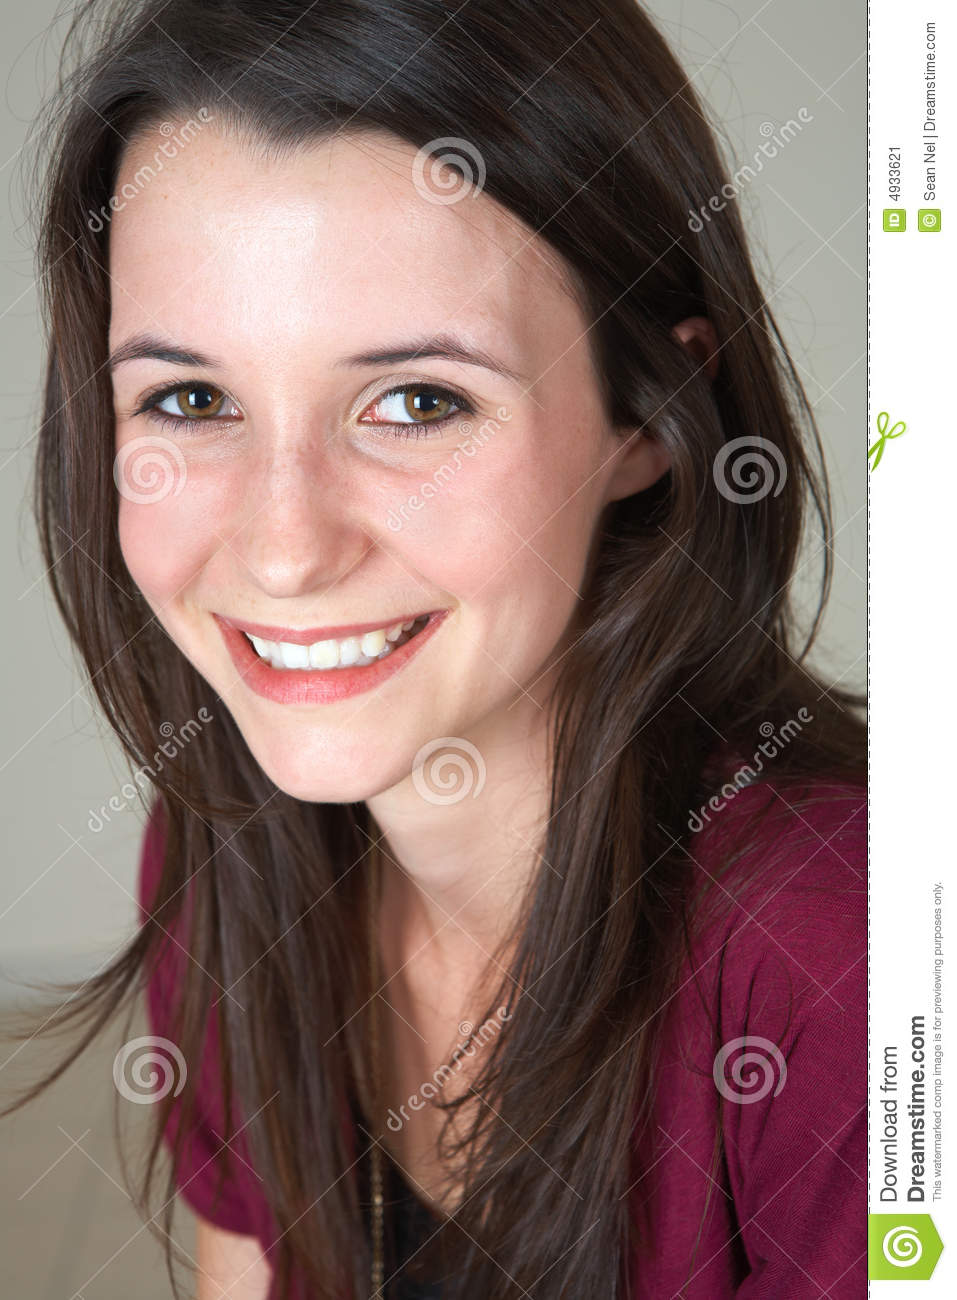 Young Girl Models Nn: Young Teenage Girl Stock Image. Image Of Attractive